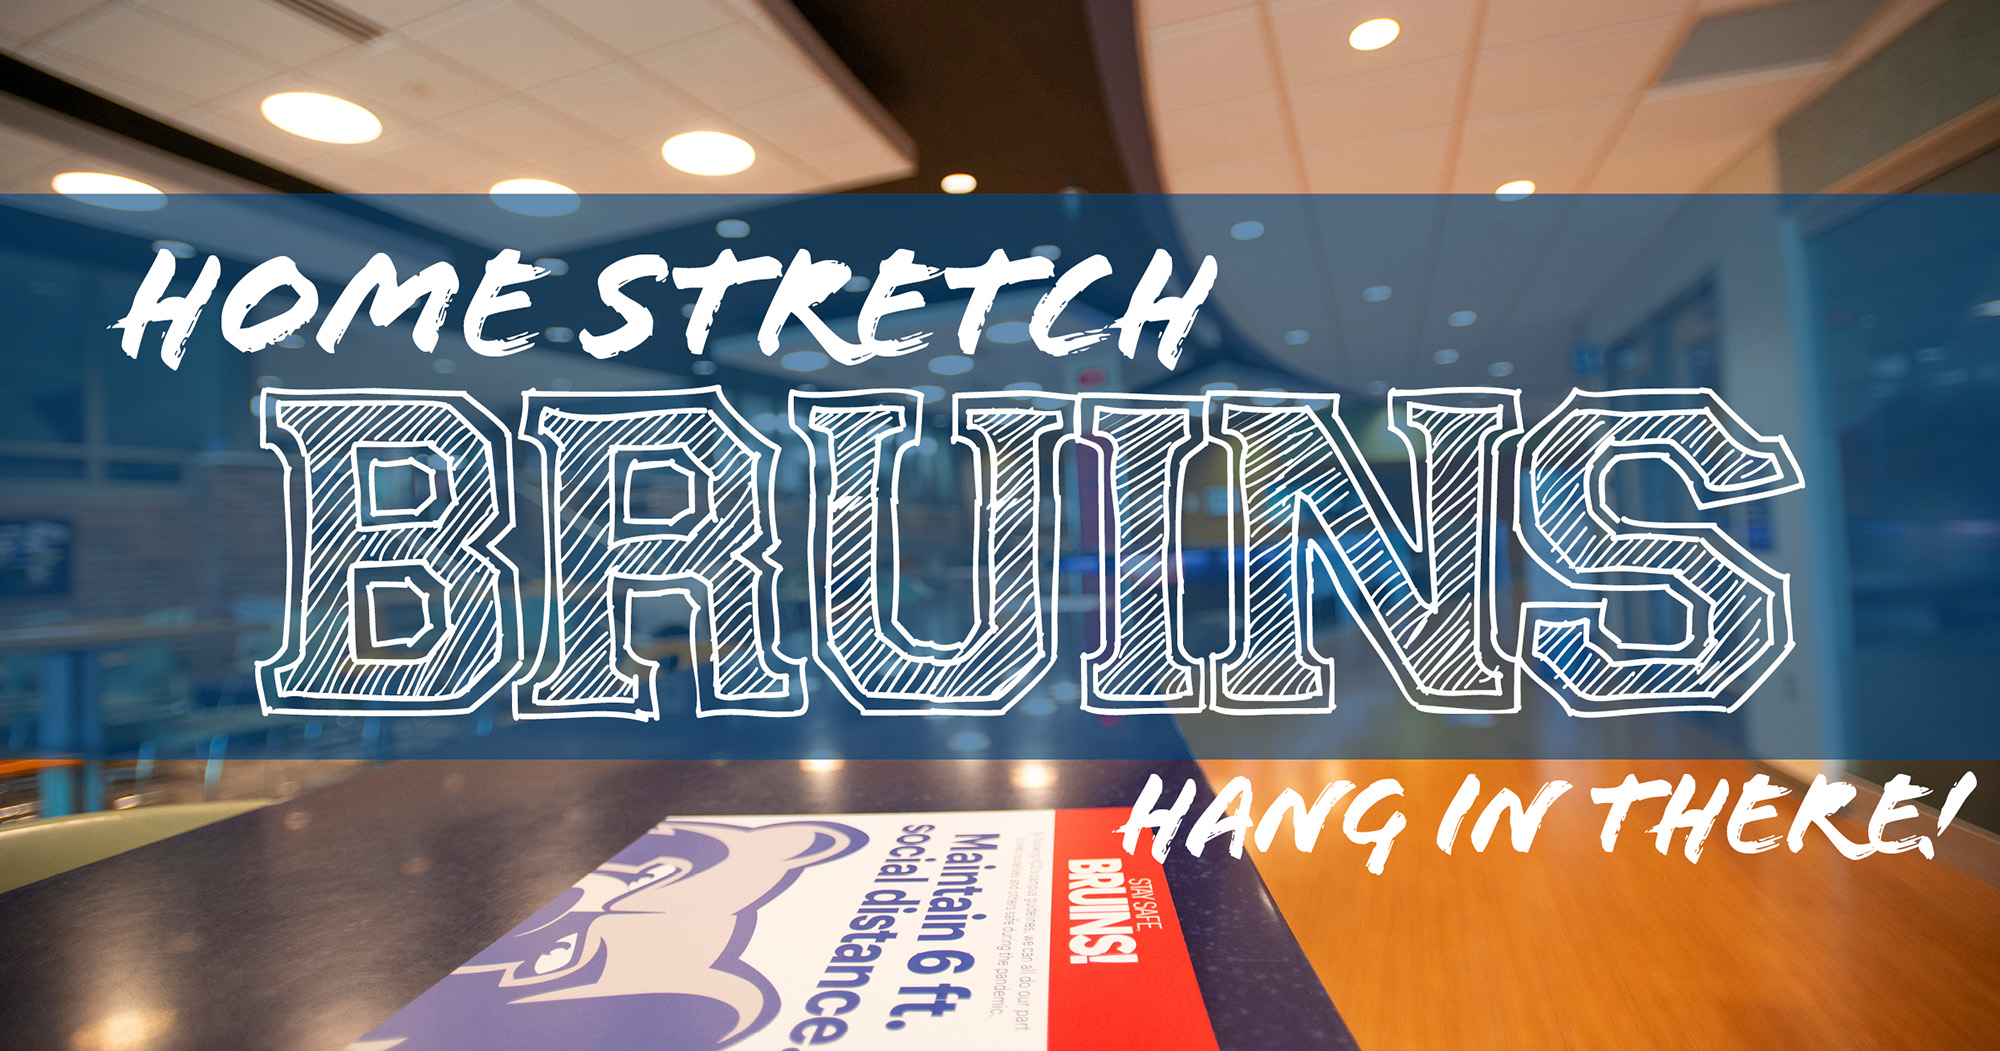 """The Student Center with a text overlay that reads """"Home Stretch Bruins. Hang in there!"""""""